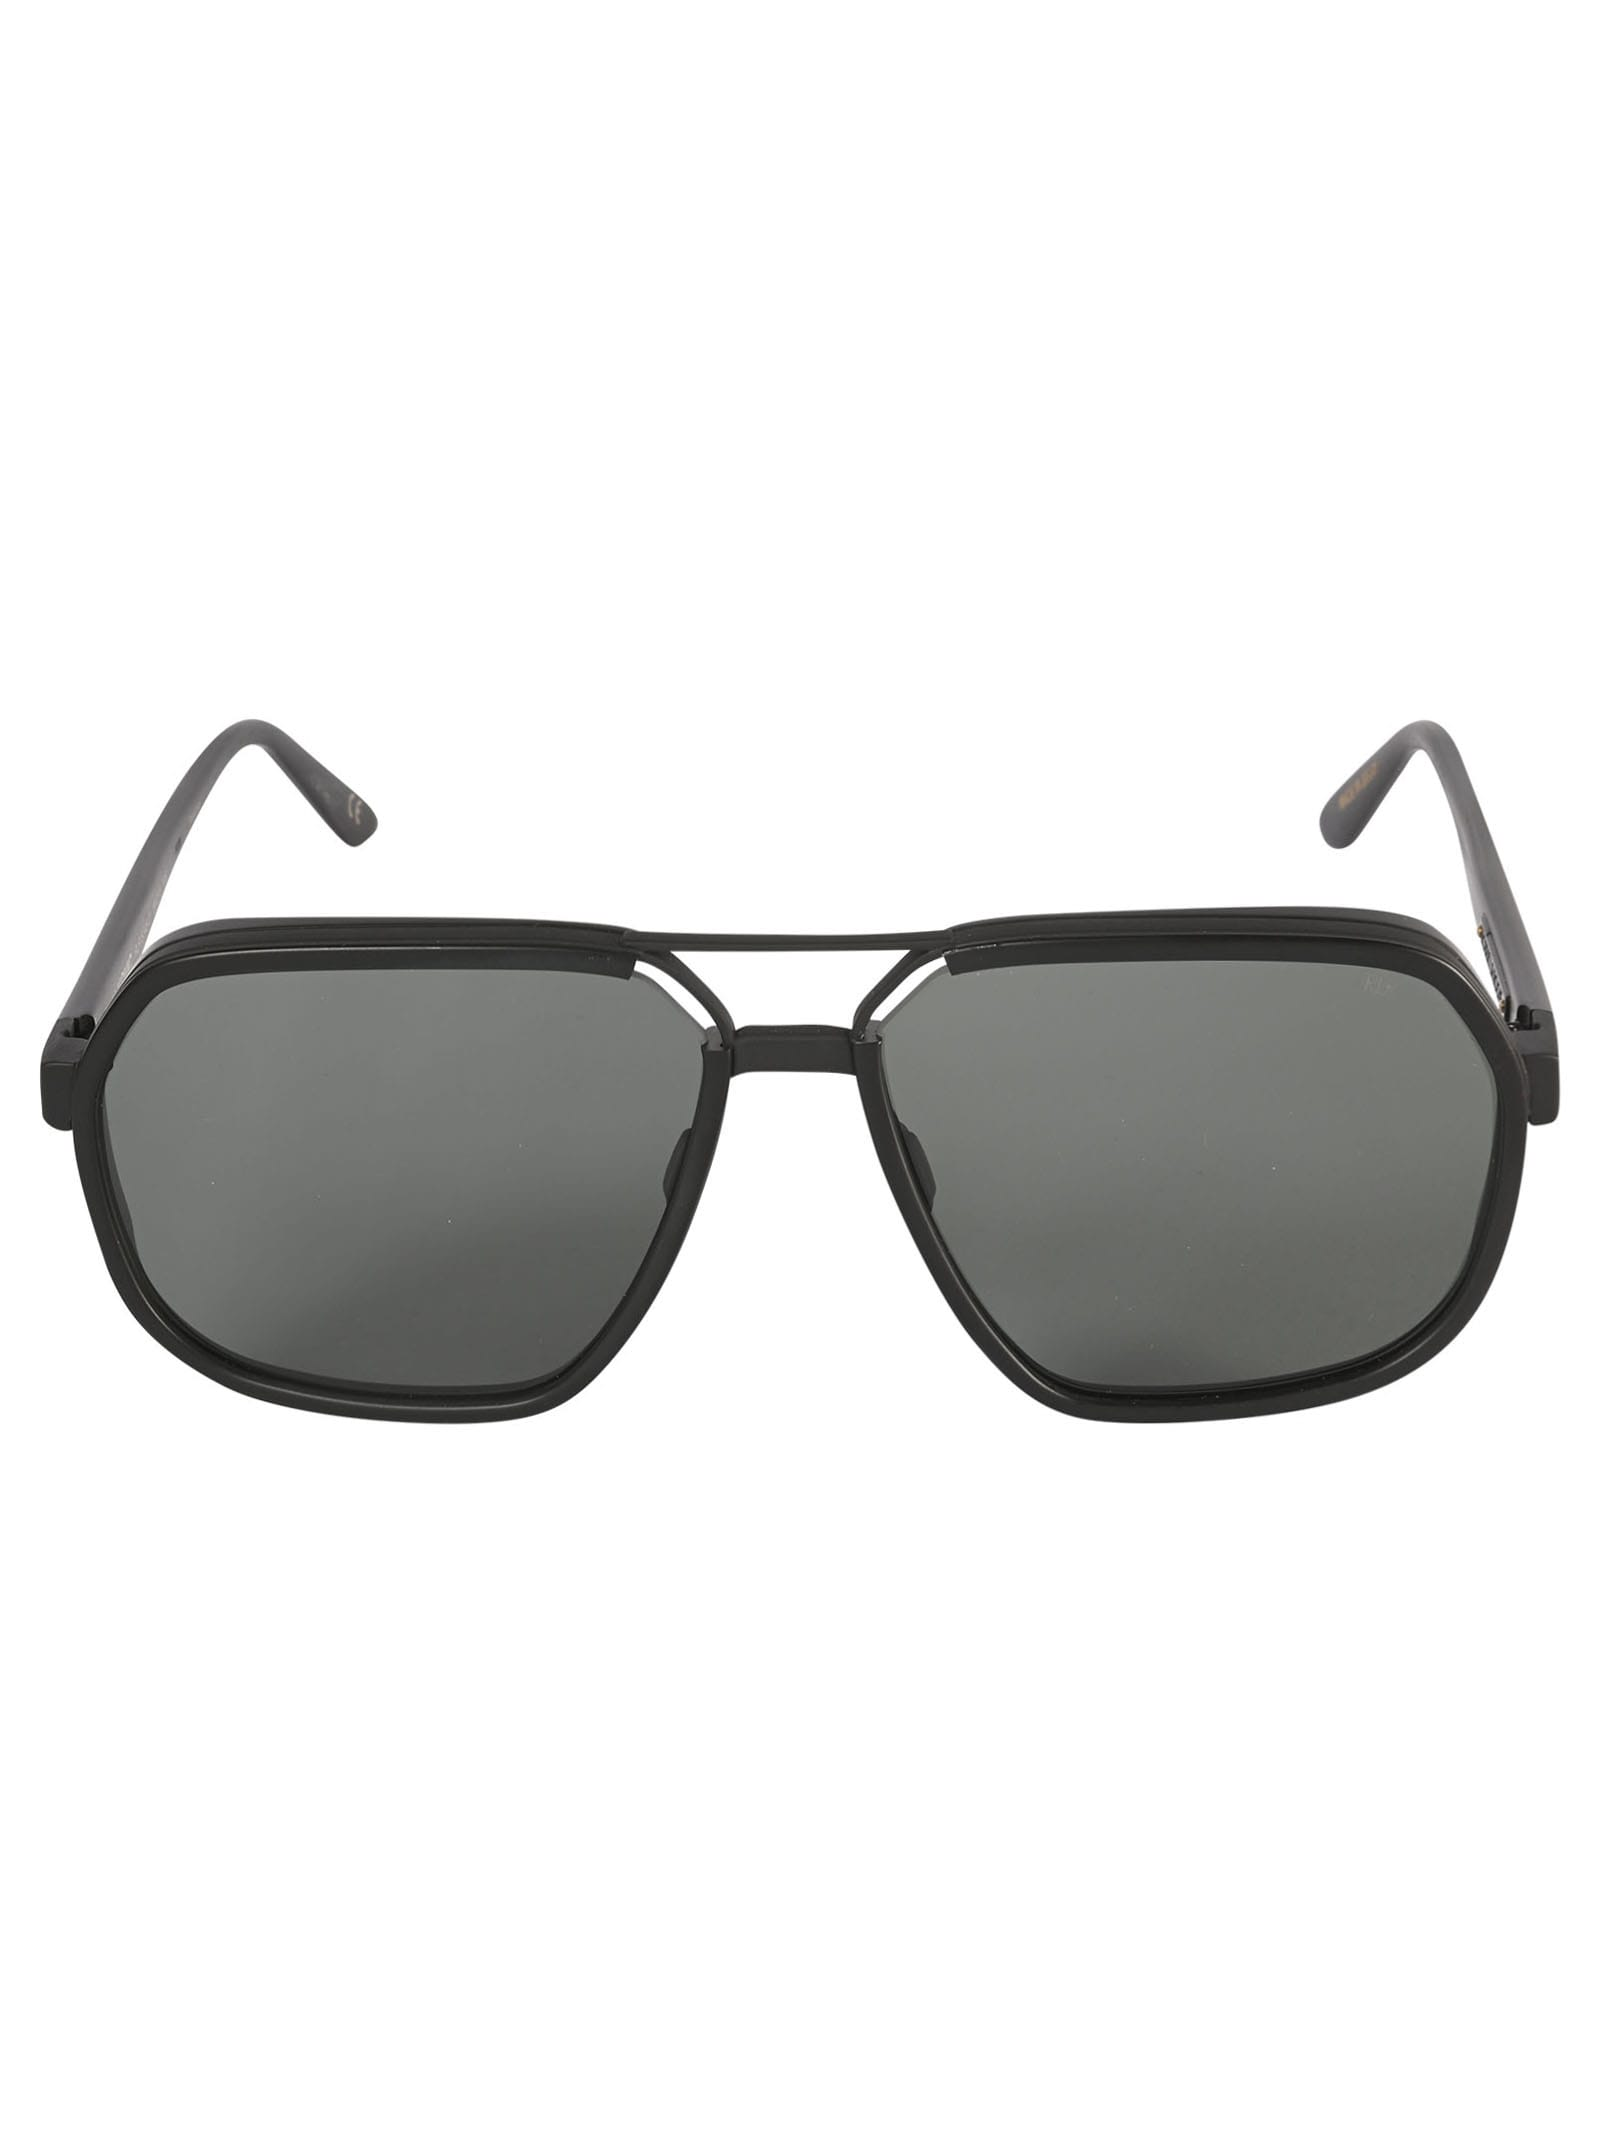 Malkovic Sunglasses